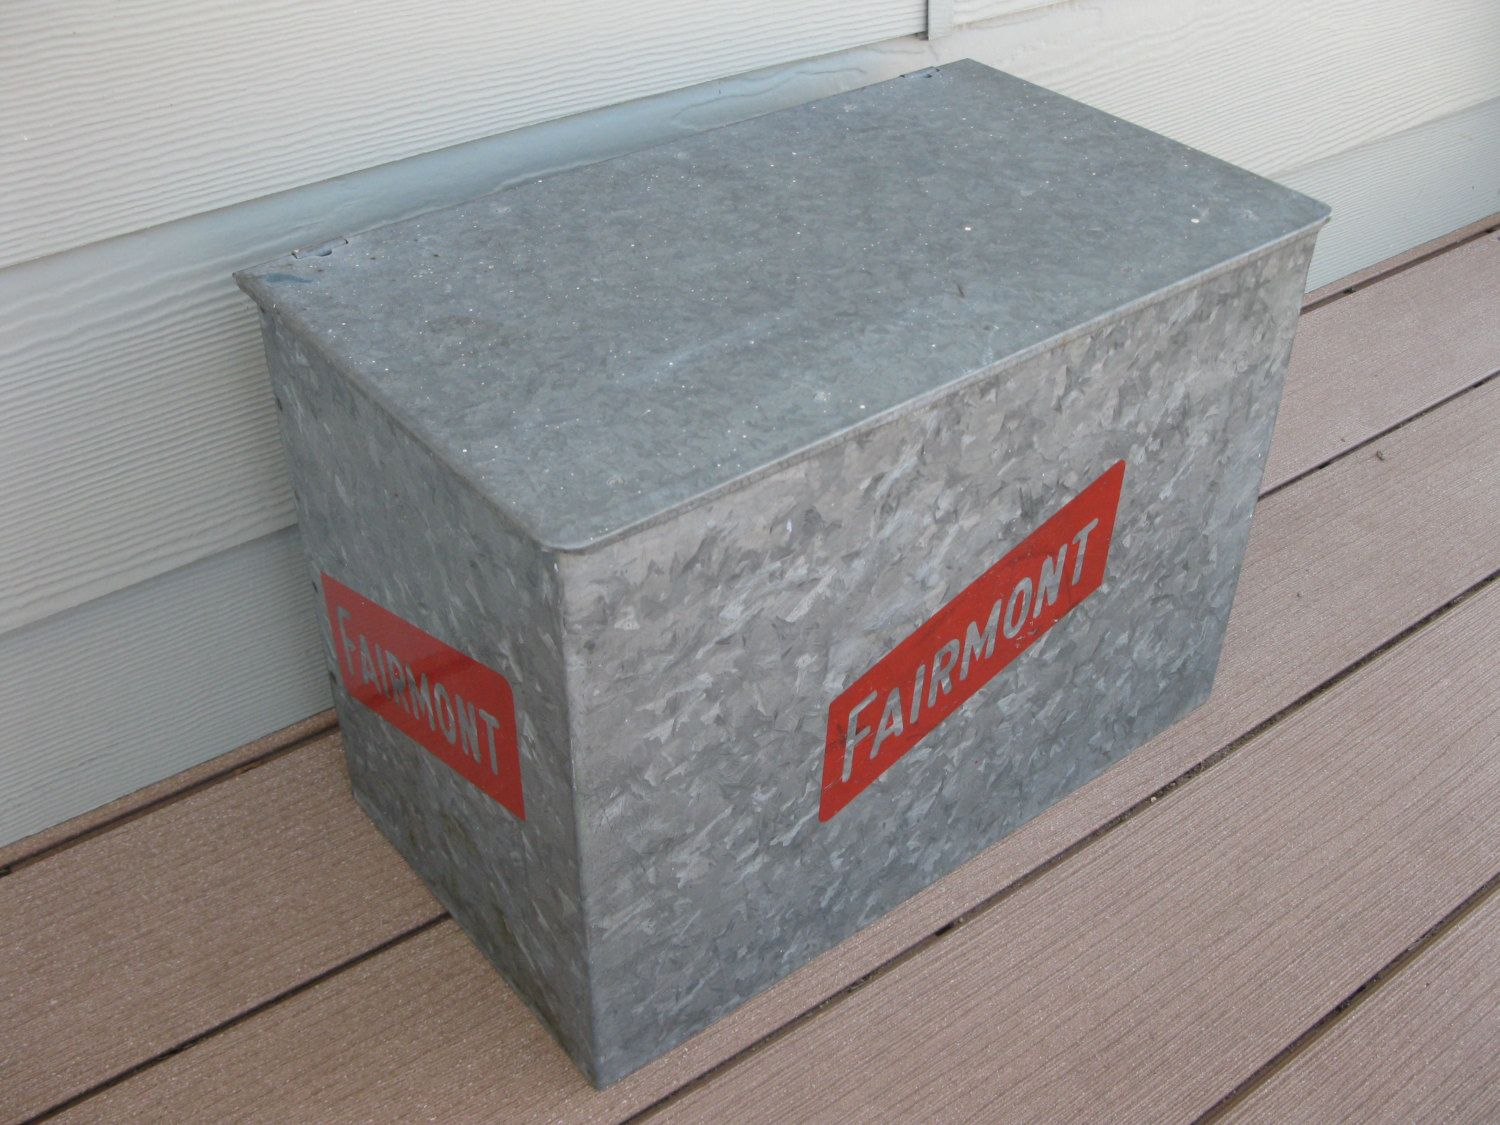 Vintage Milk Box Galvanized Metal Fairmont Foods Porch Box Insulated Home Delivery Advertising Milk Delivery Lidded Metal Box 50s Galvanized Metal Milk Box Metal Box